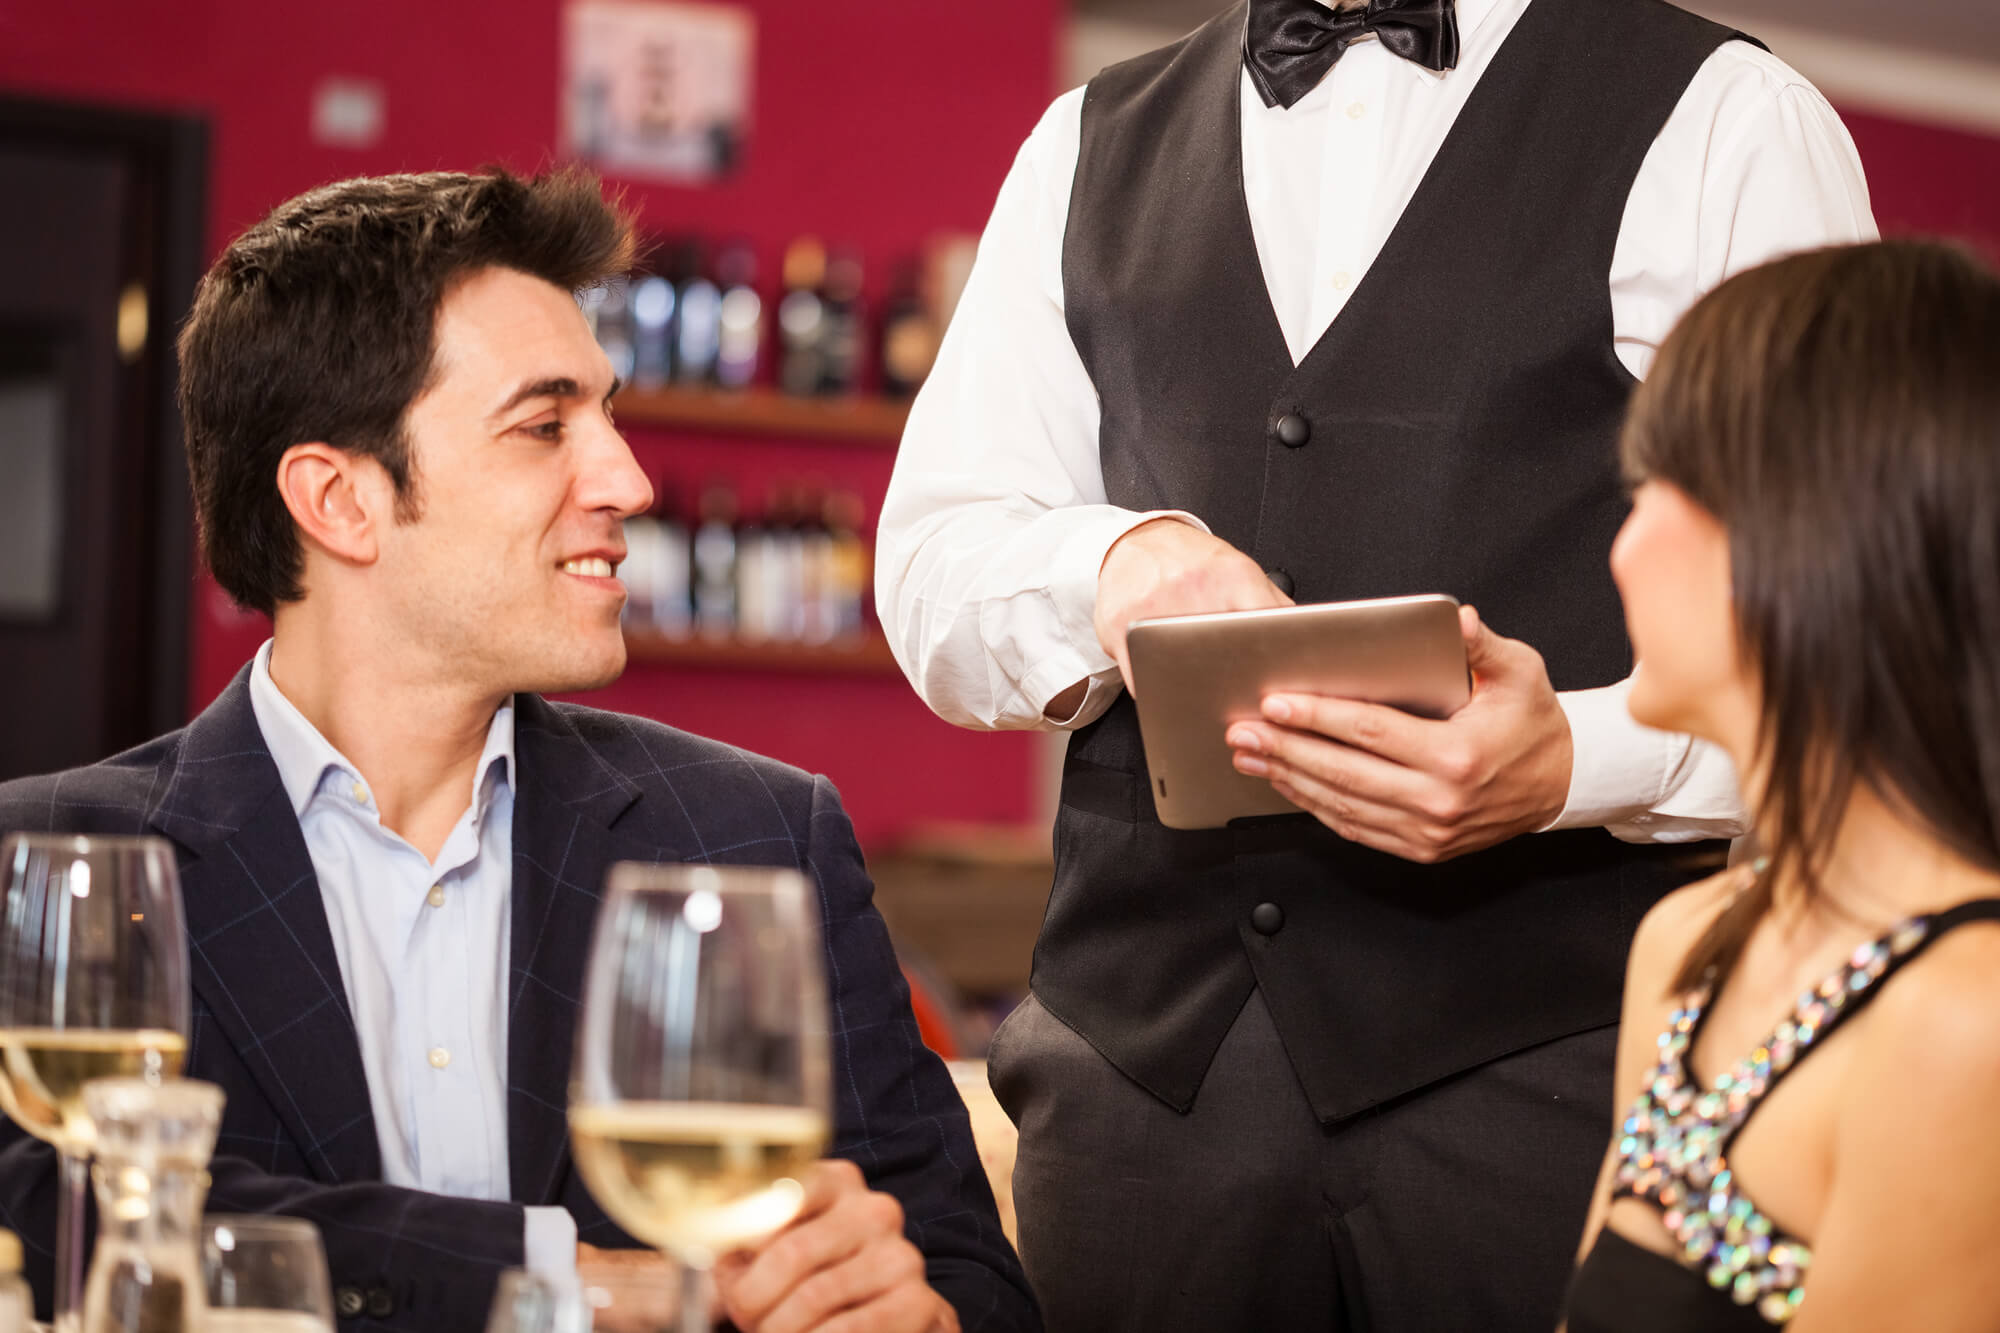 A couple eat dinner at a fancy restaurant, served by a waiter wearing a white shirt and a black vest. The man may be concerned about the effect of reducing fat on his testosterone levels.